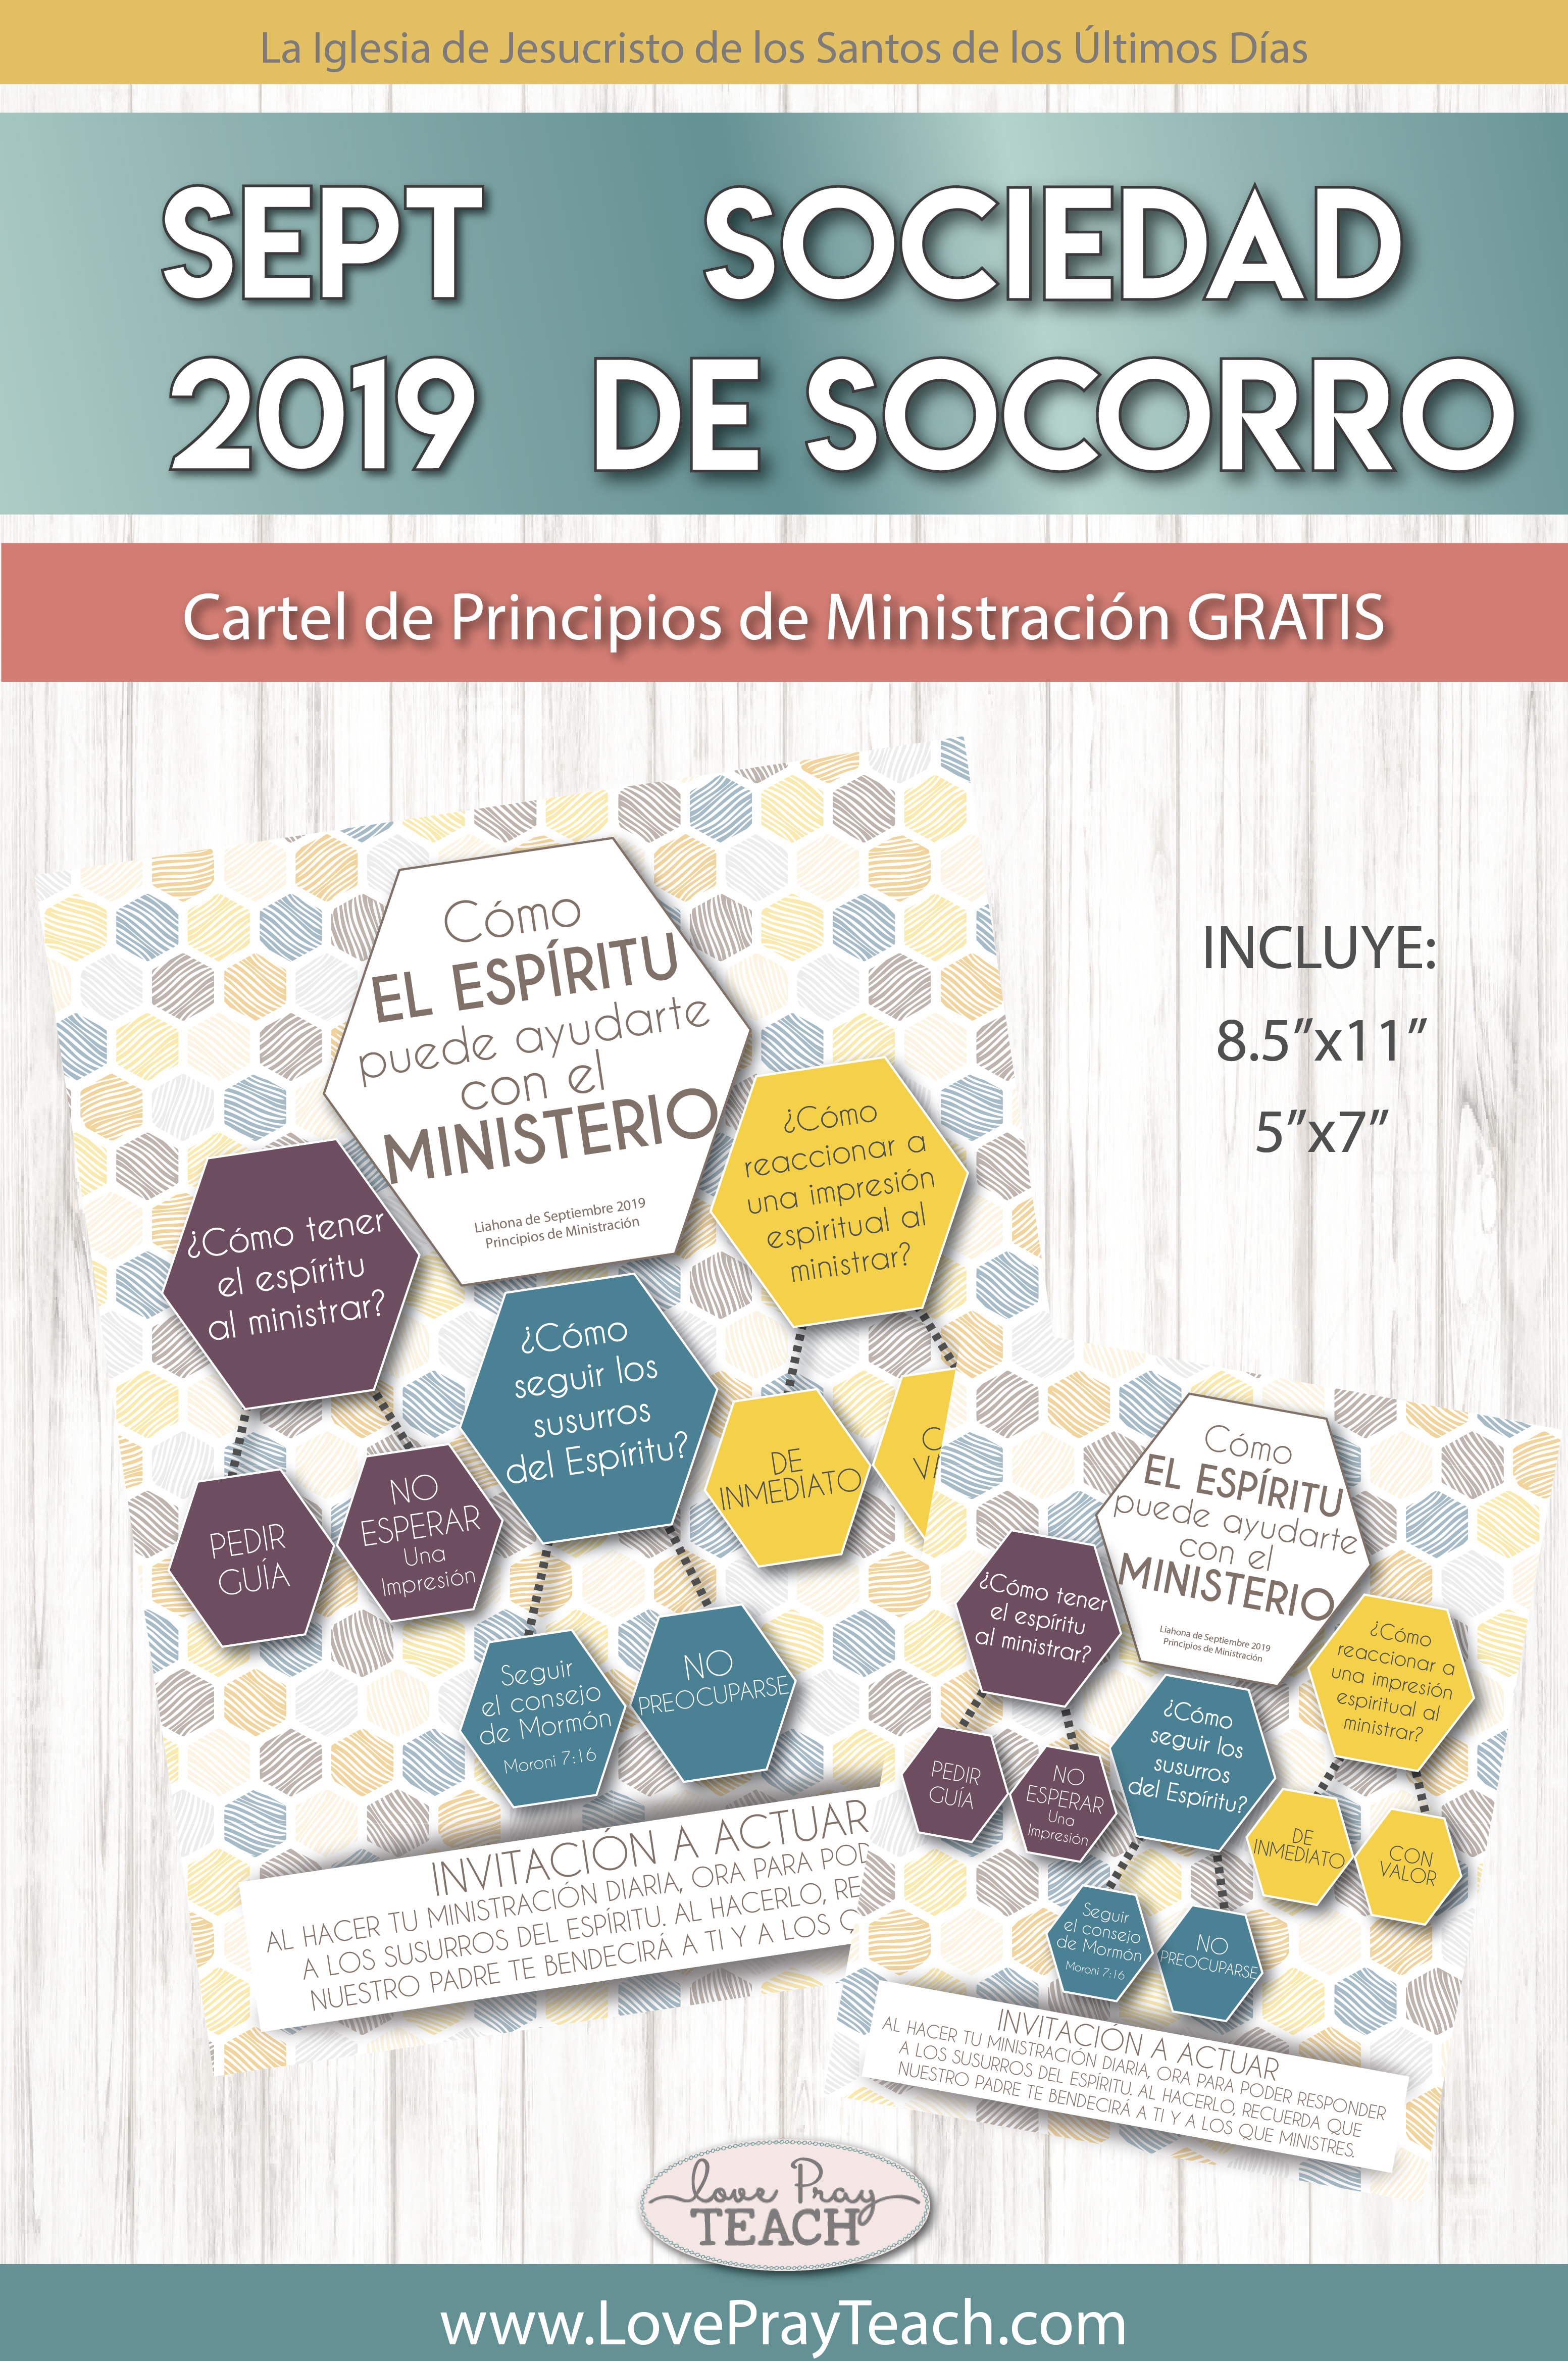 September 2019 Ministering Principles poster in Espanol! www.LovePrayTeach.com